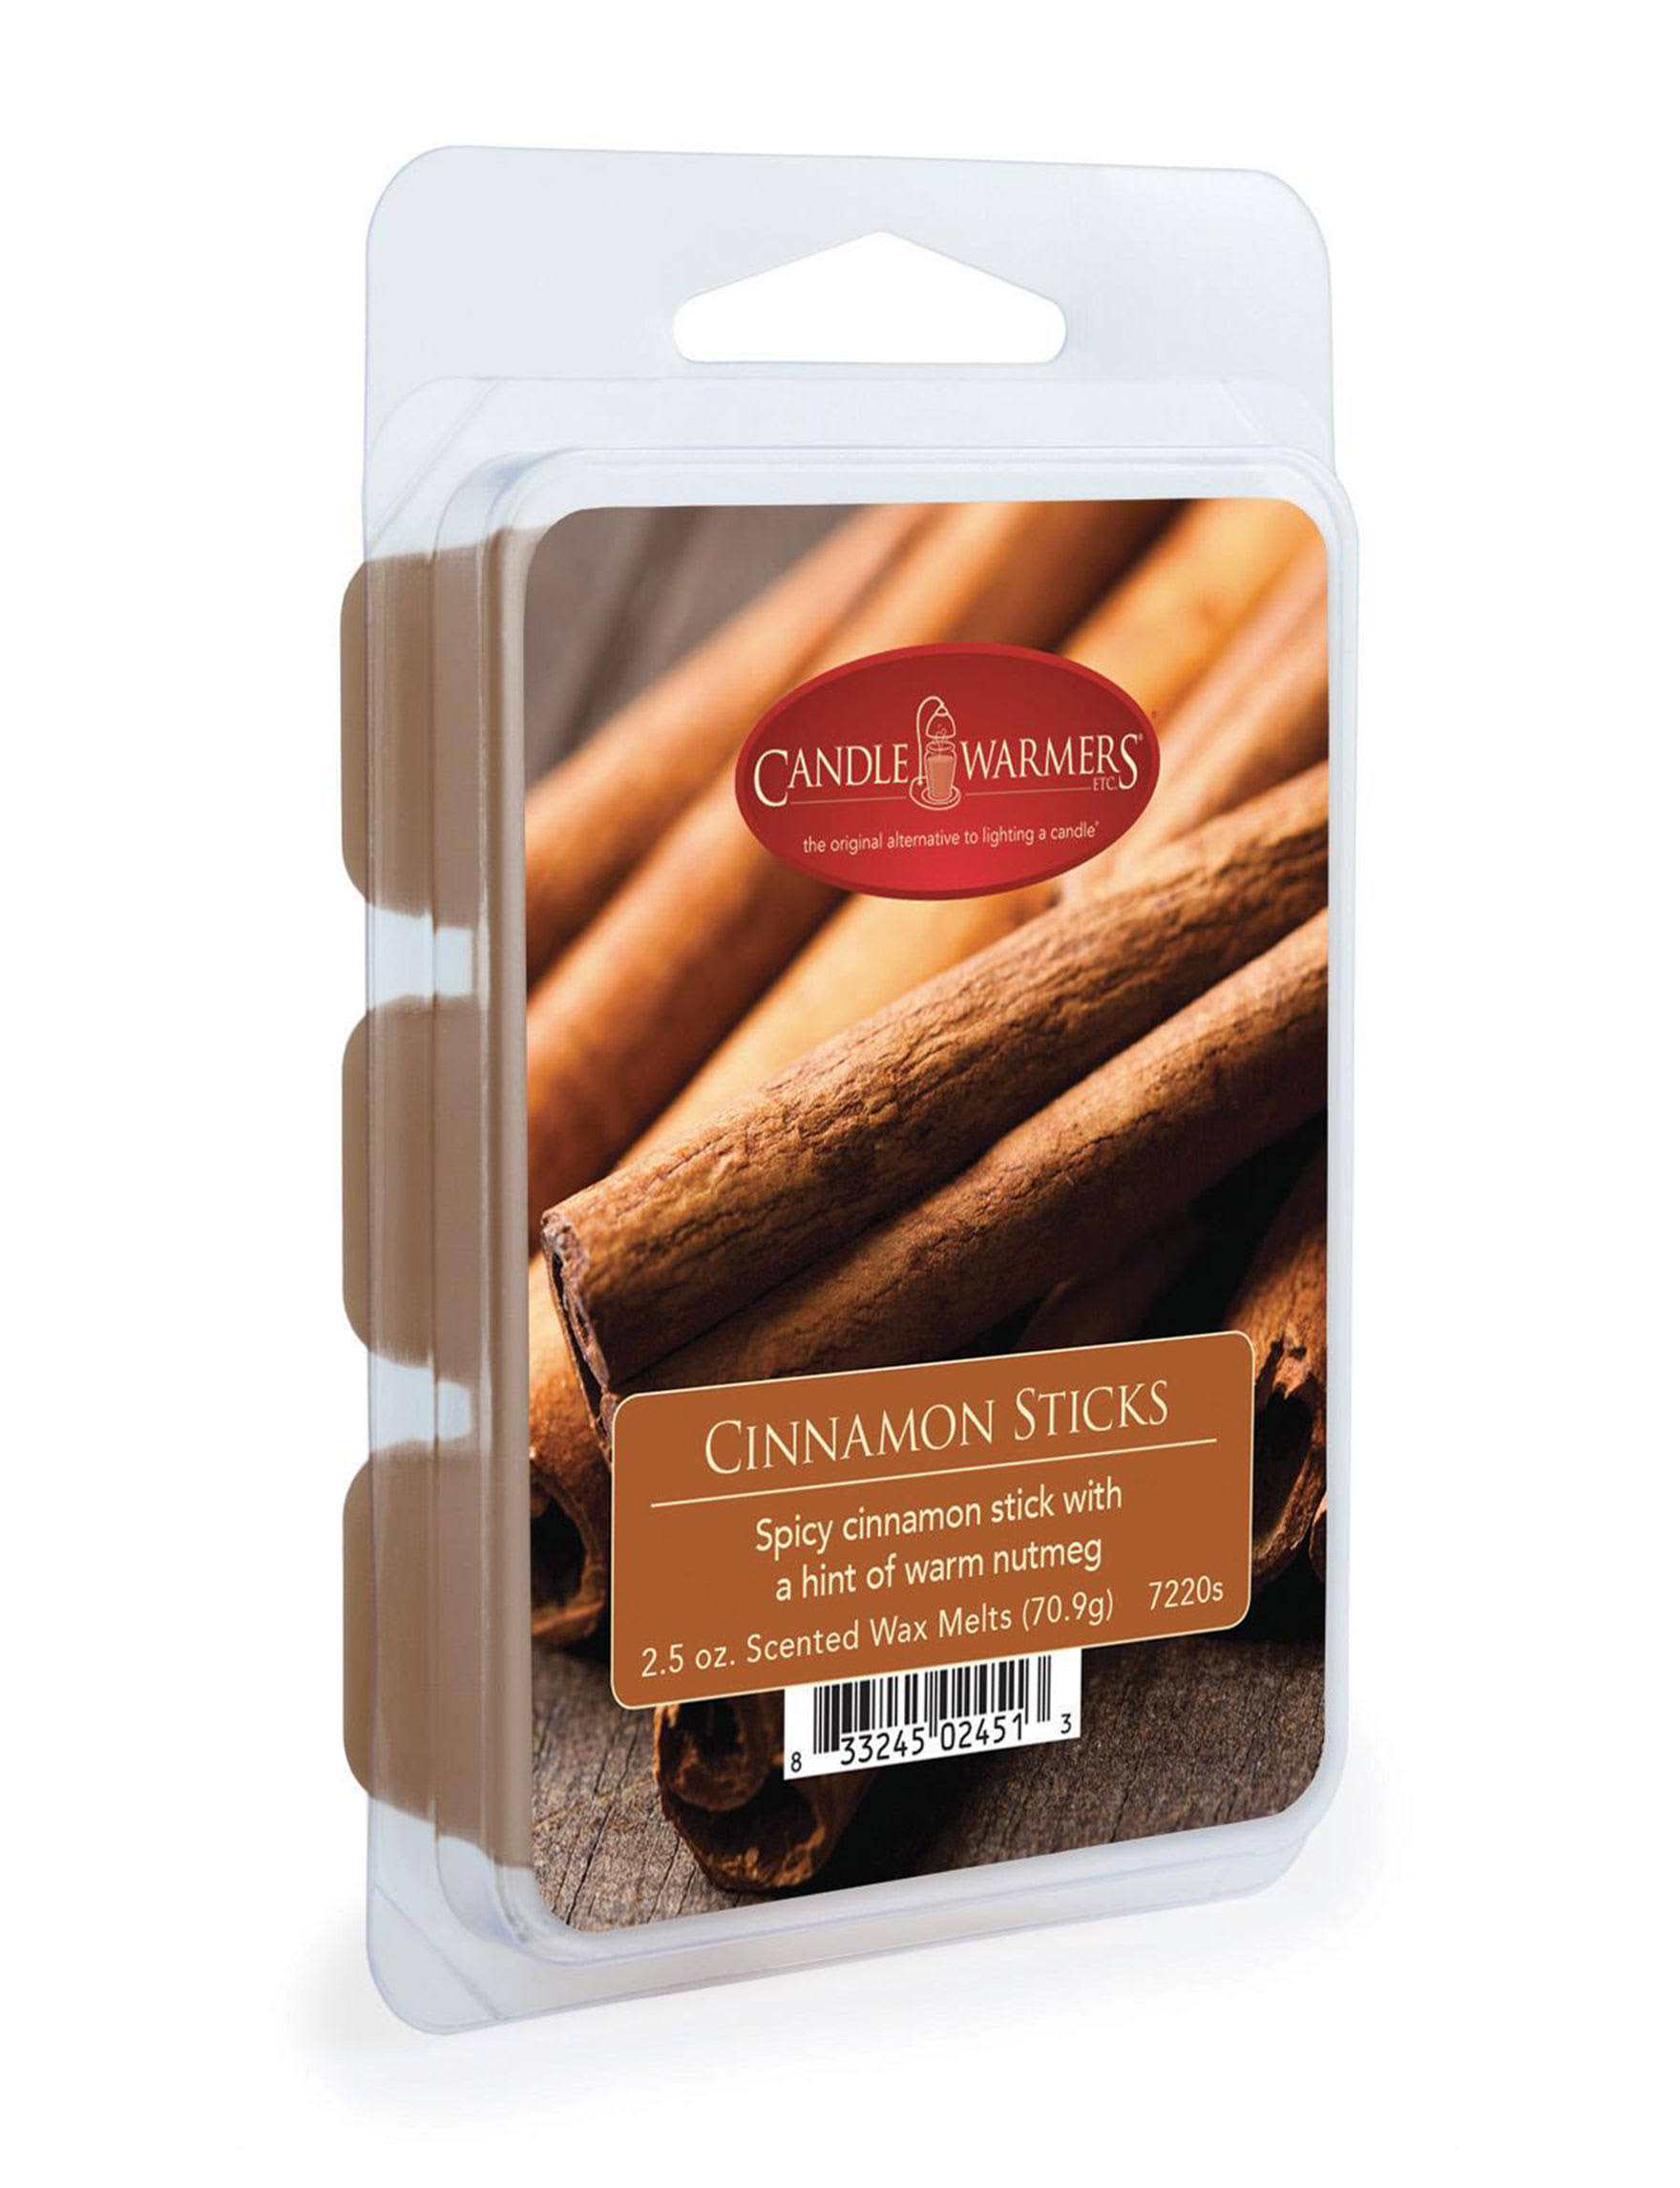 Candle Warmers Cinnamon Sticks 2.5 oz Wax Melts